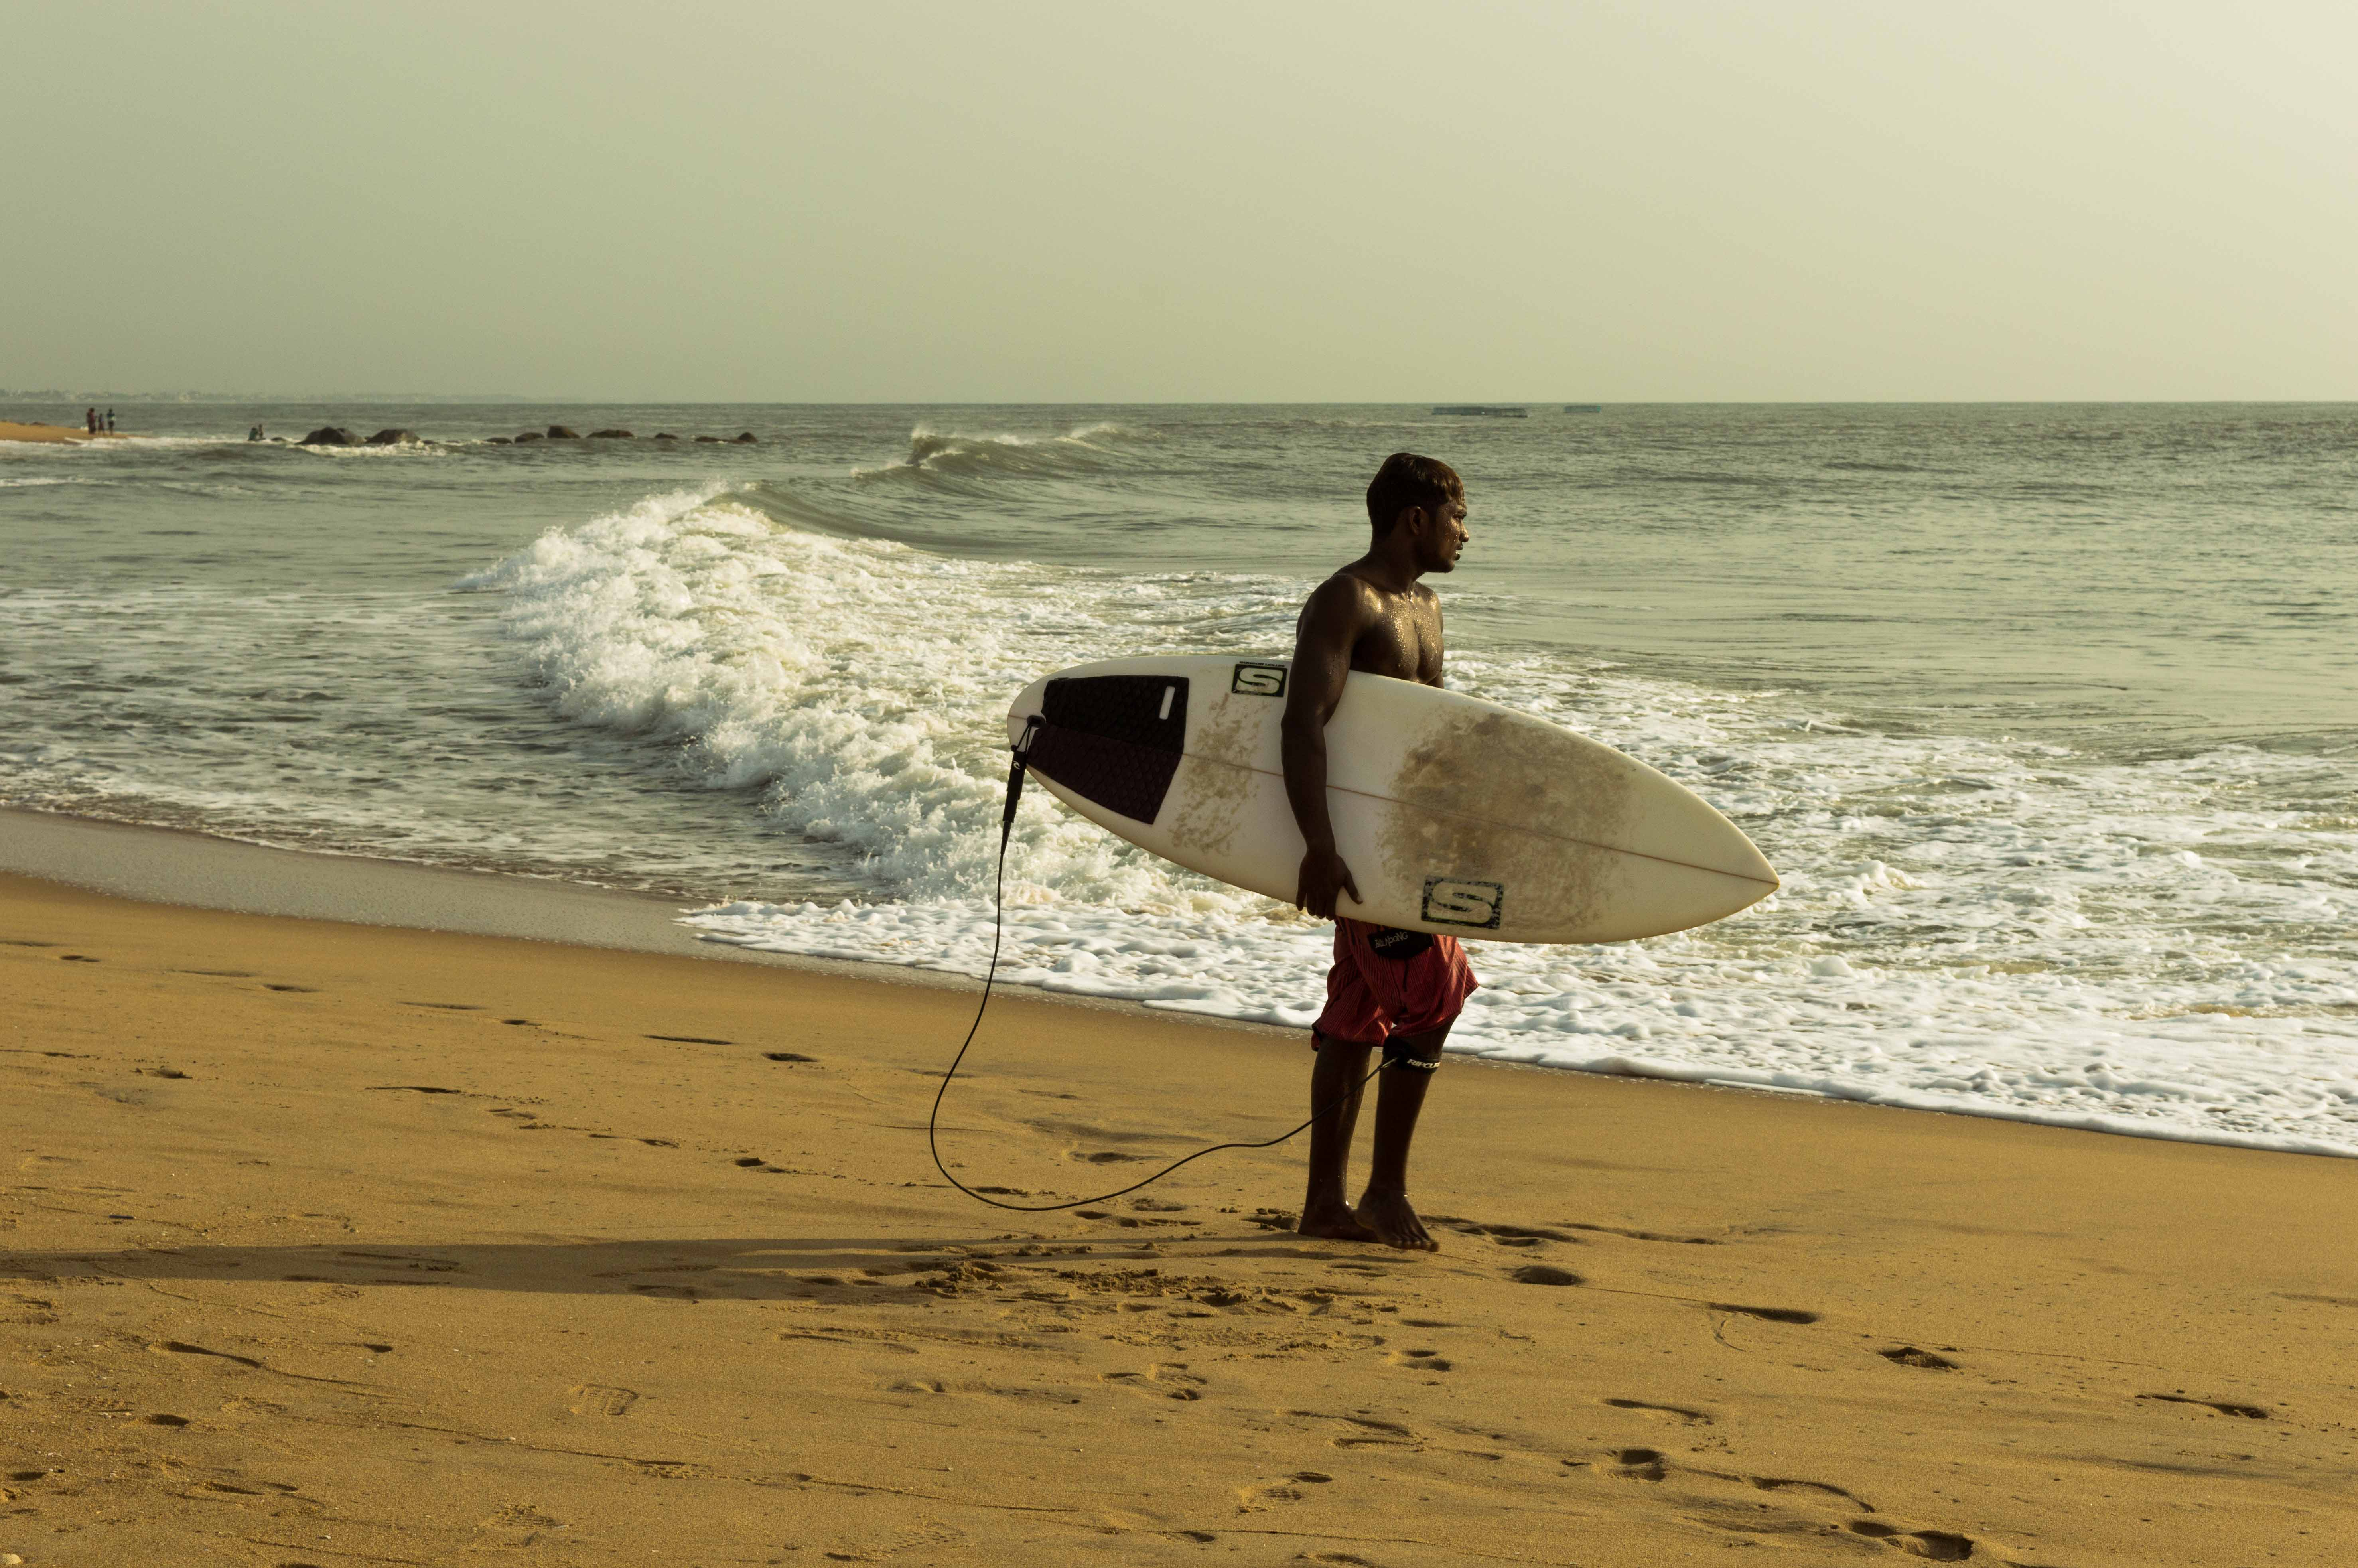 Surfing at Chennai